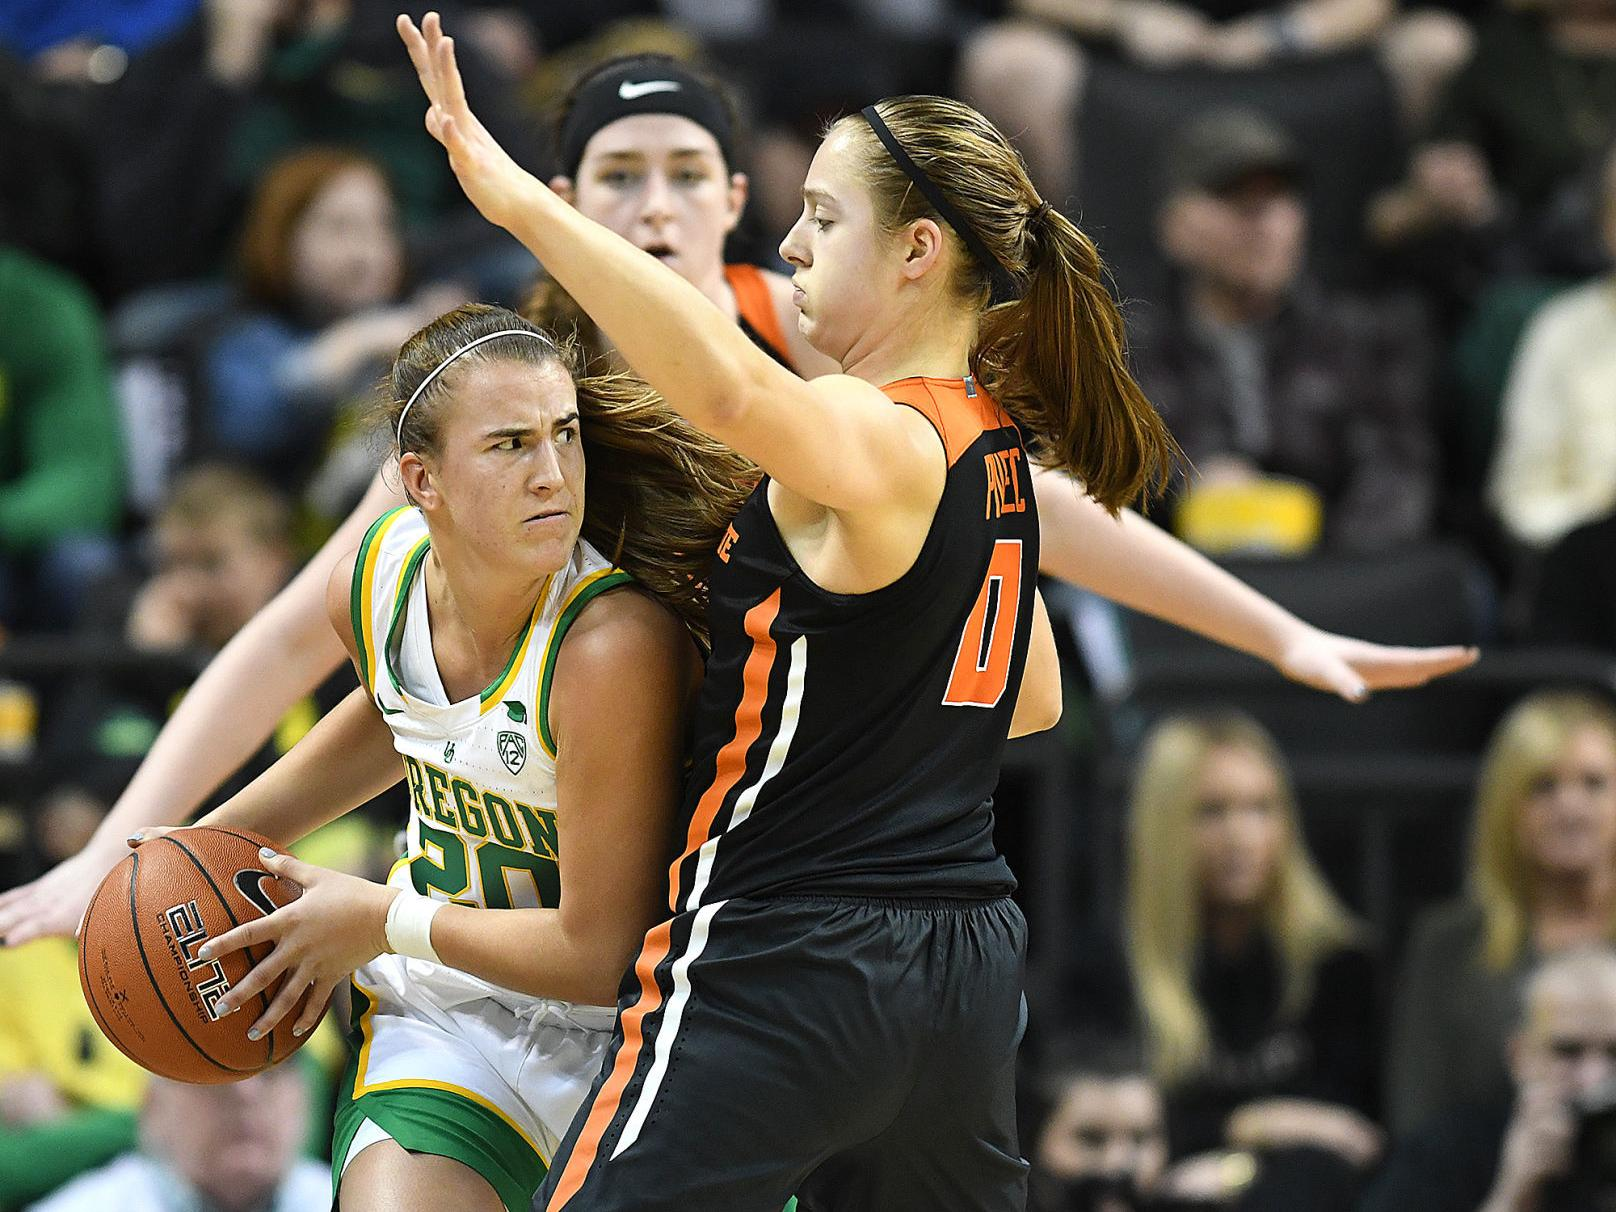 Gallery: Images of Sabrina Ionescu's college career | Local ...